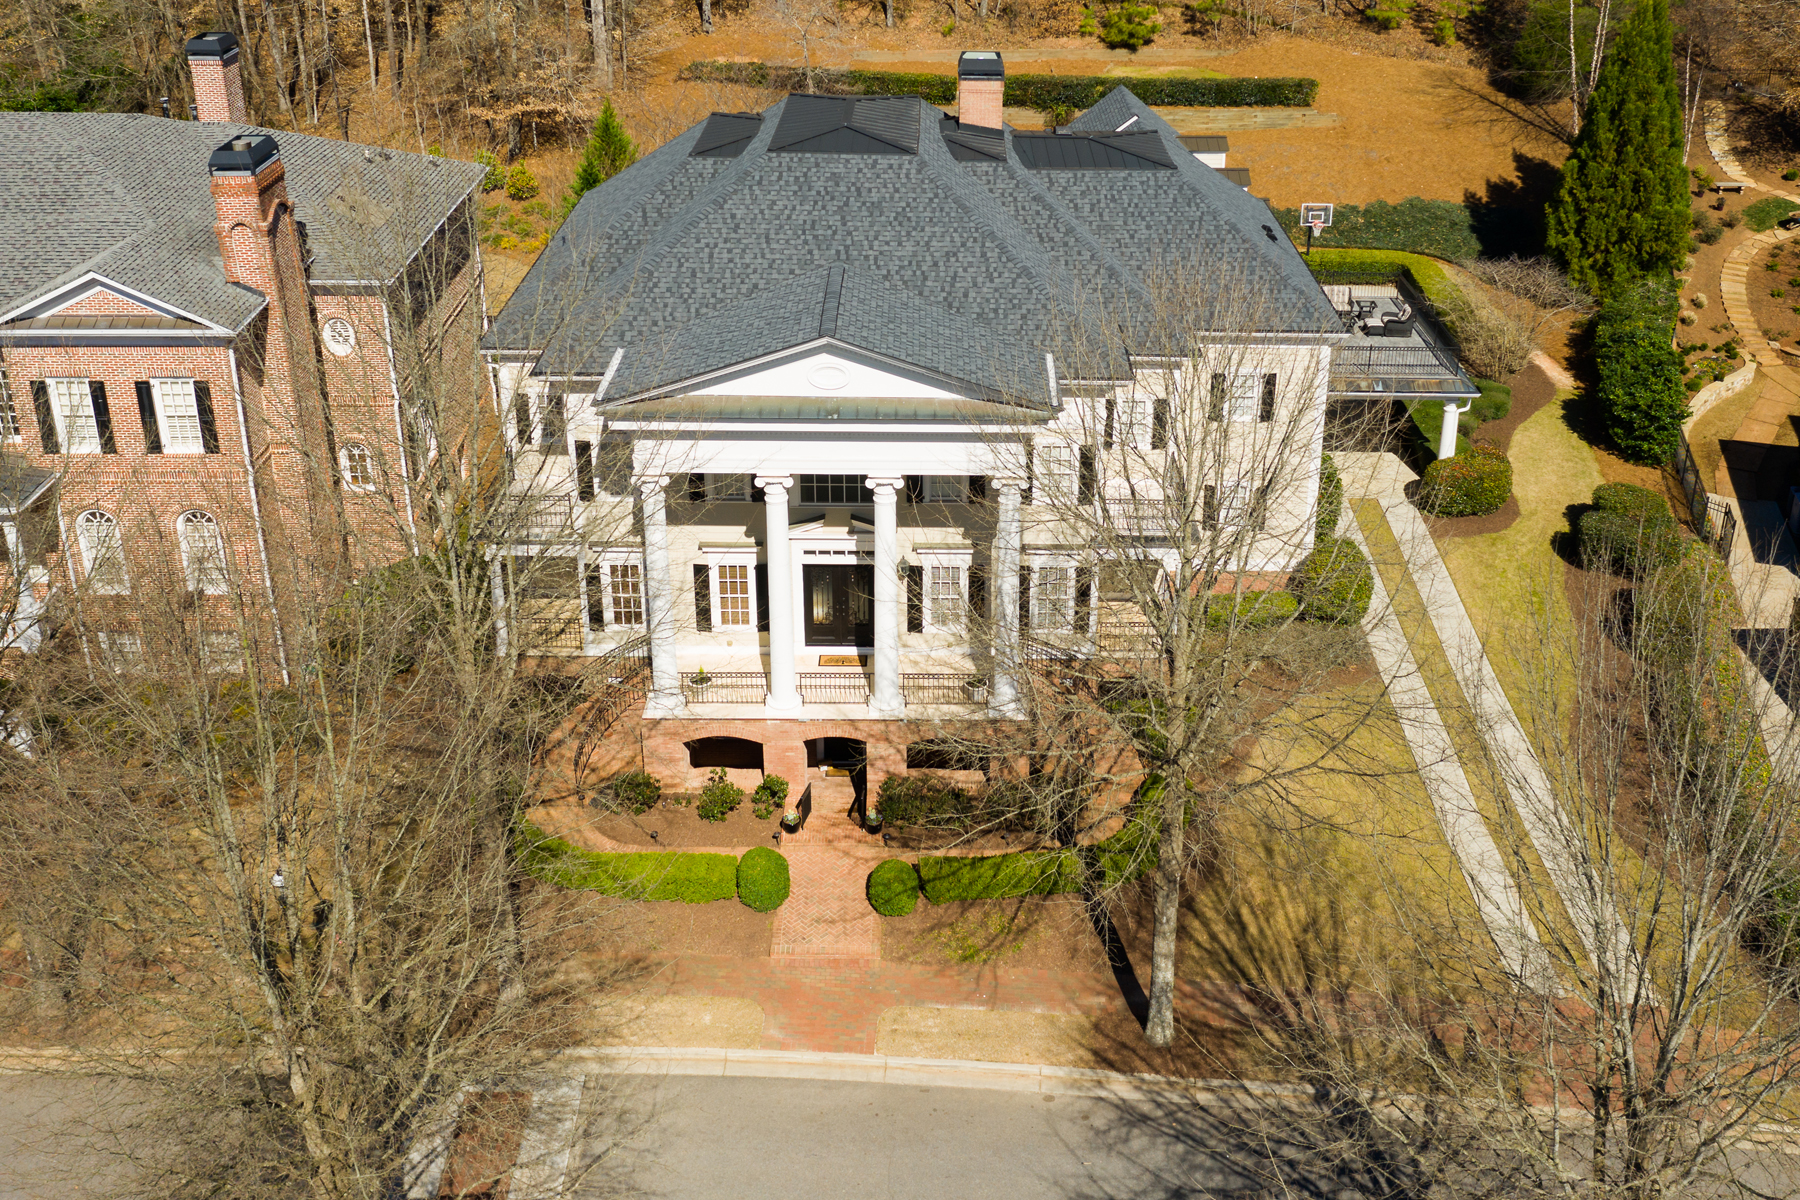 Single Family Homes for Active at Elegance and Charm Await in this Newly Renovated Masterpiece 3125 W Addison Drive Alpharetta, Georgia 30022 United States